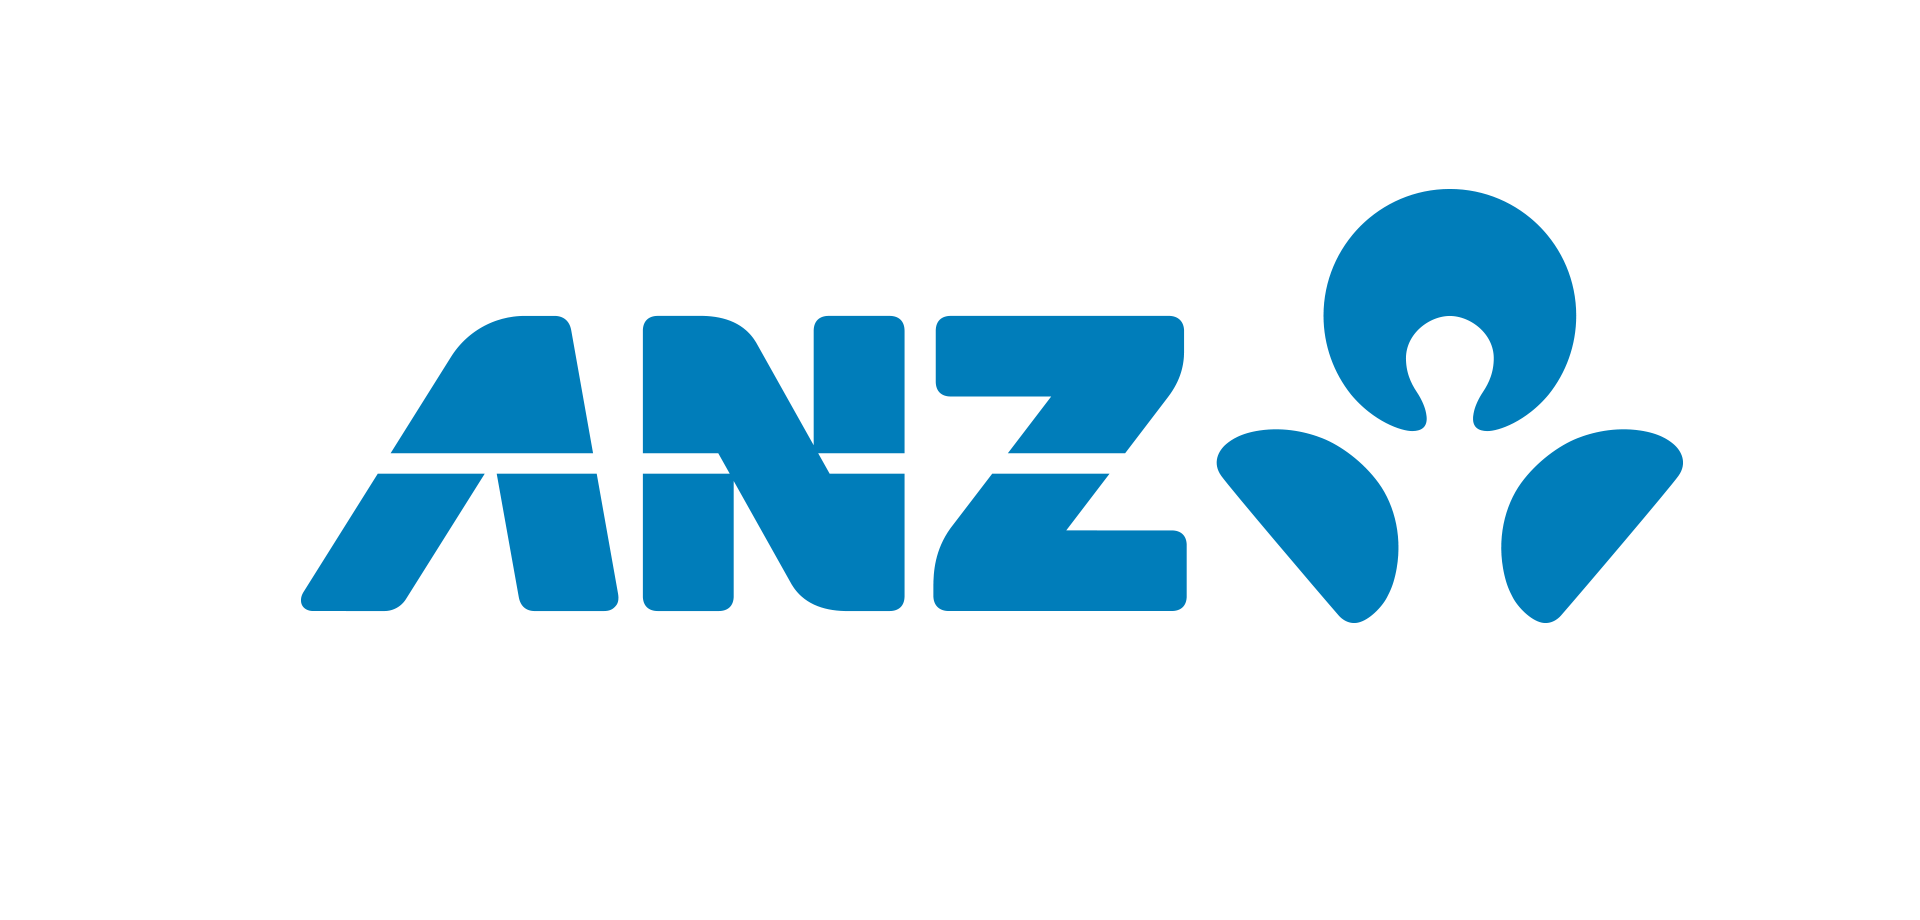 Anz_Logo_Horizontal_Blue_For_Screen_106100[1].png